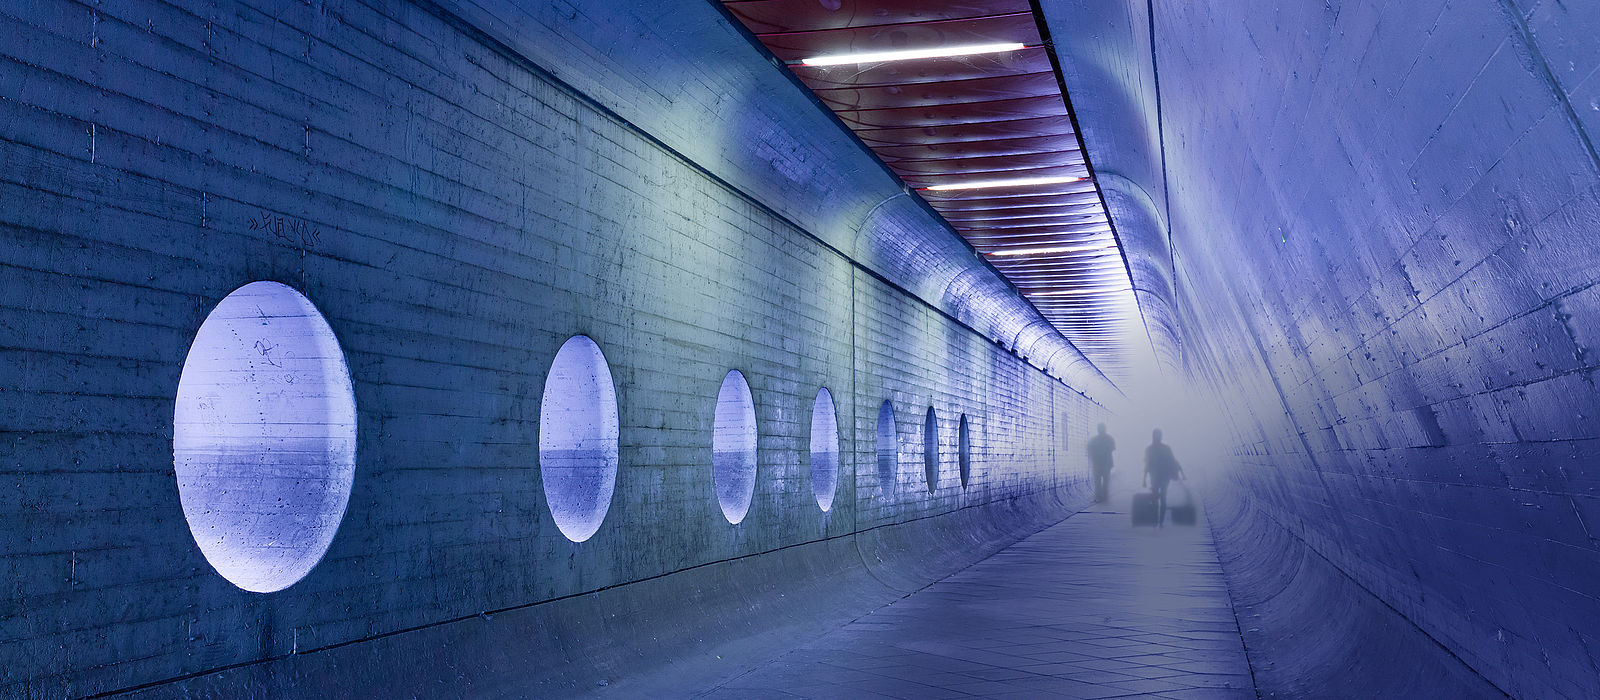 A woman and a man walk through a pedestrian tunnel towards the illuminated exit, pulling trolleys.